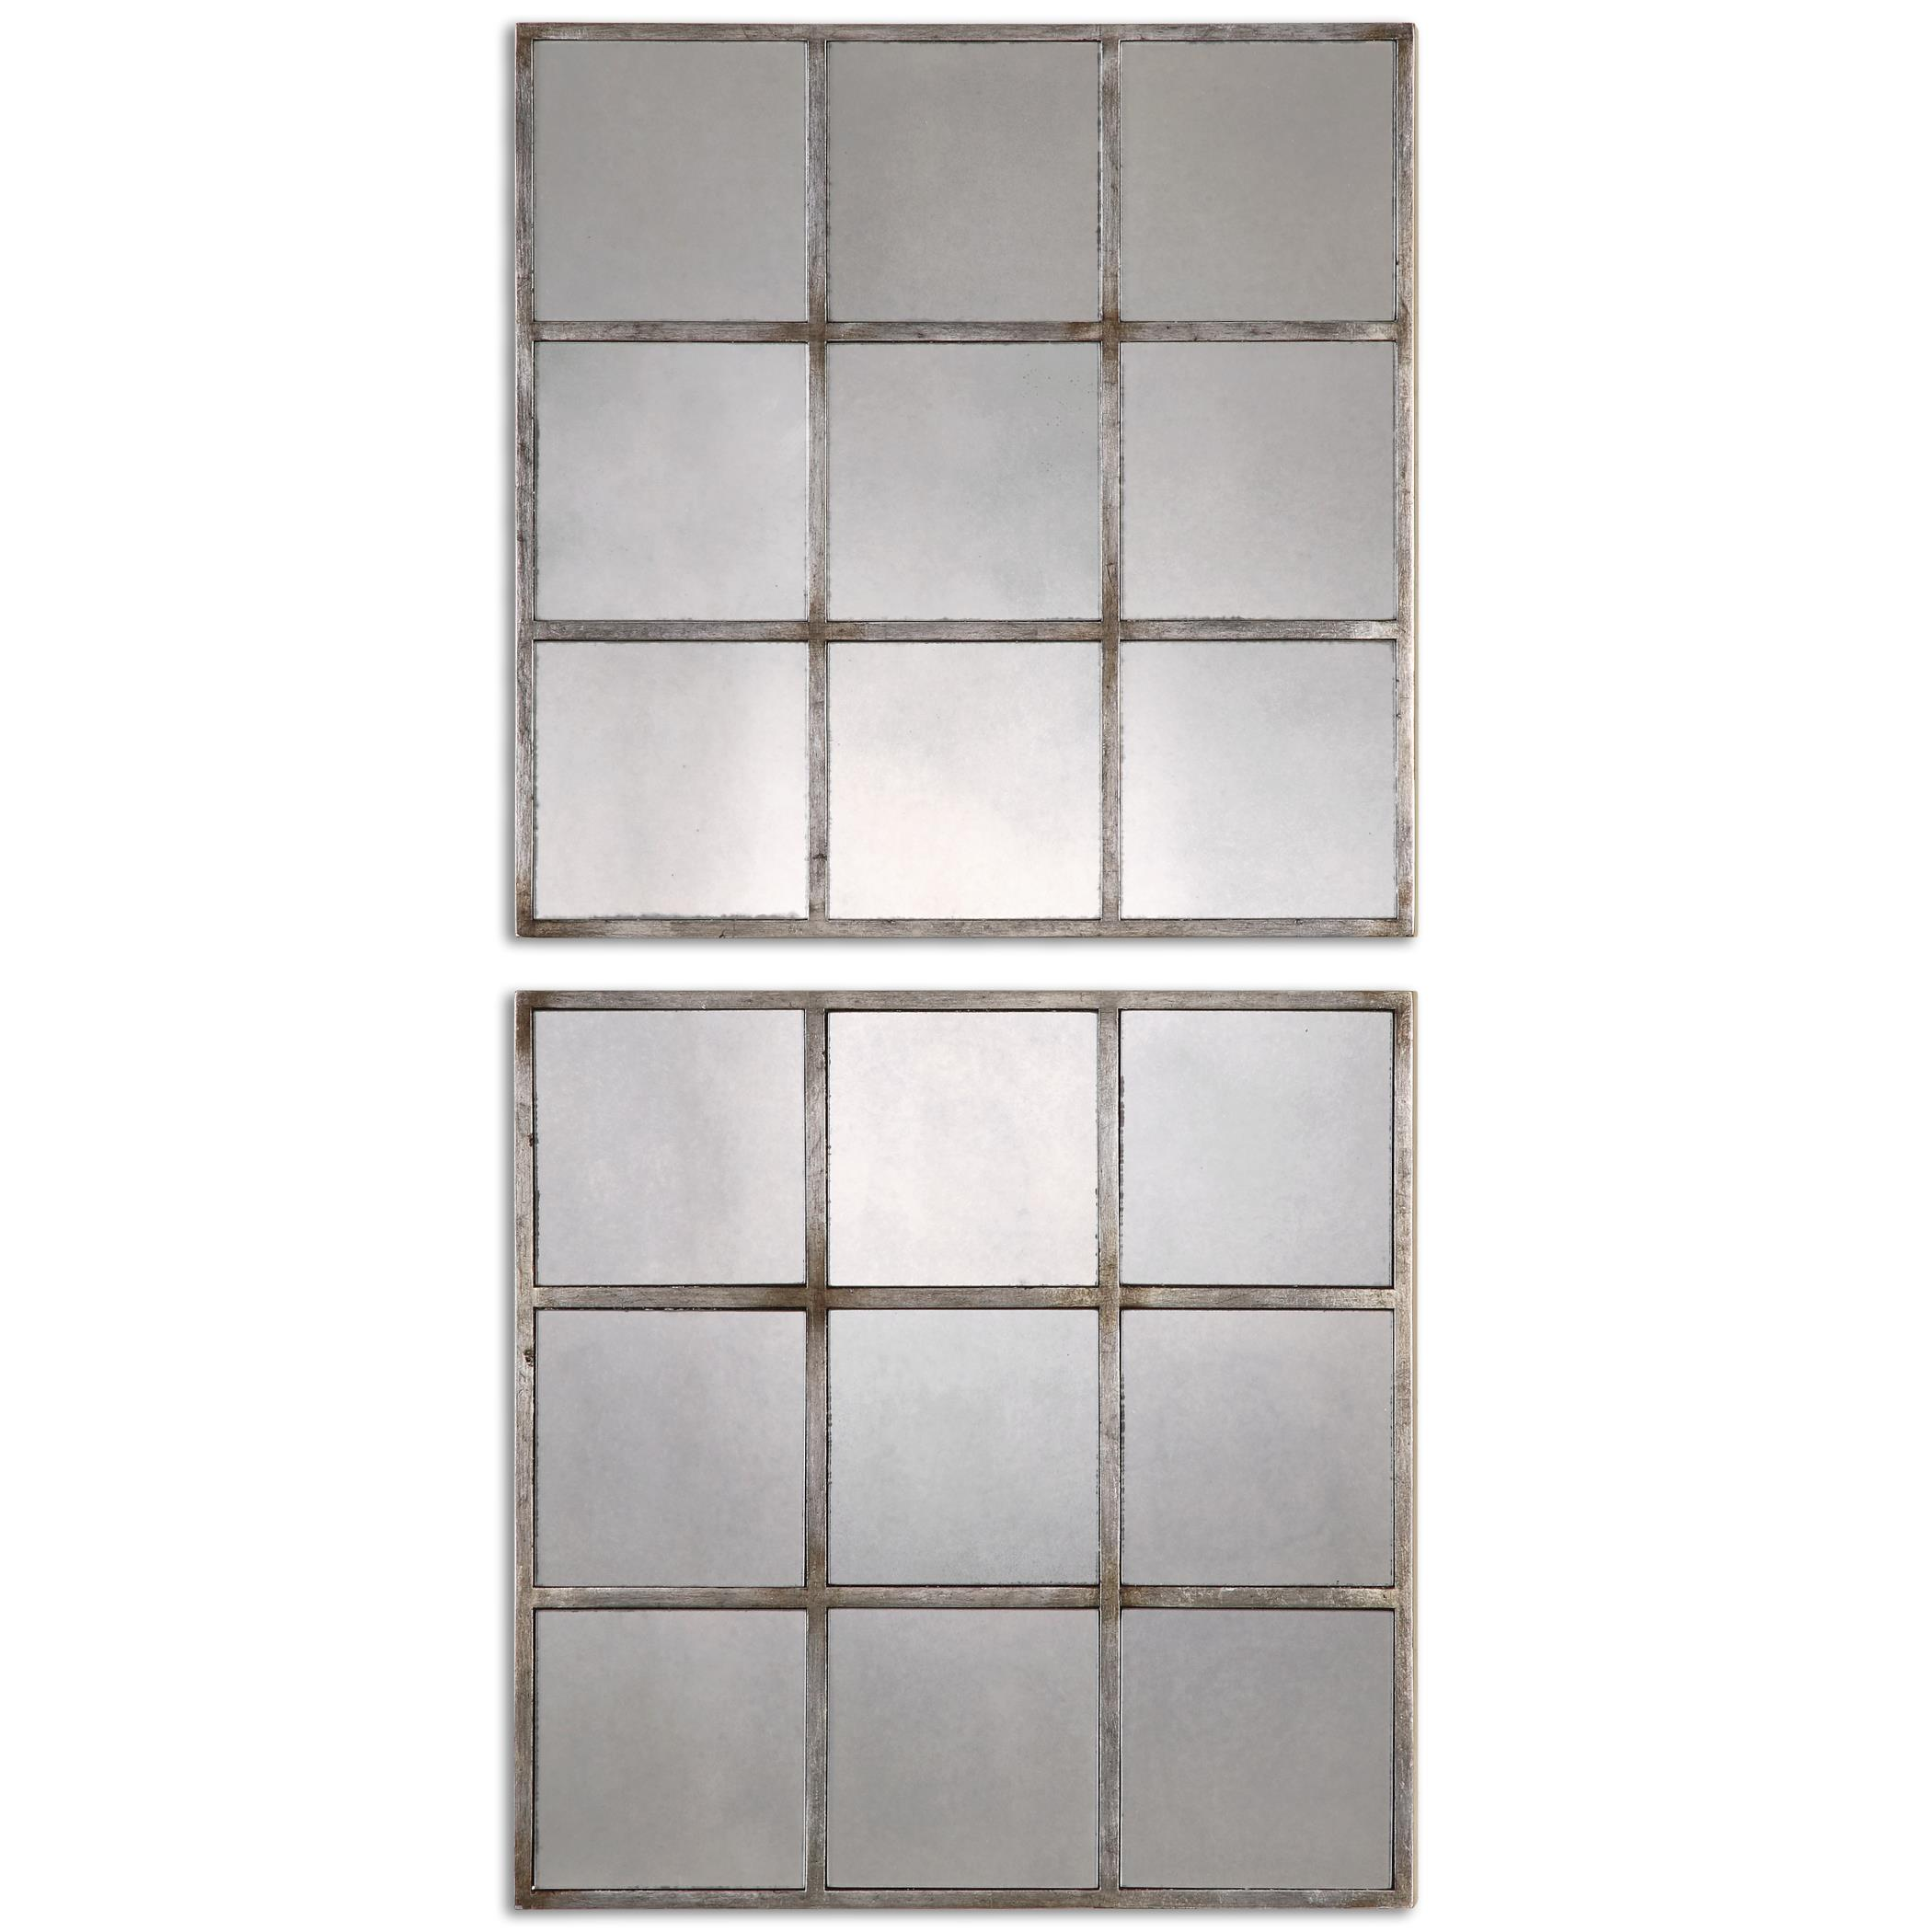 Uttermost Mirrors Derowen Squares Antique Mirrors S/2 - Item Number: 13935